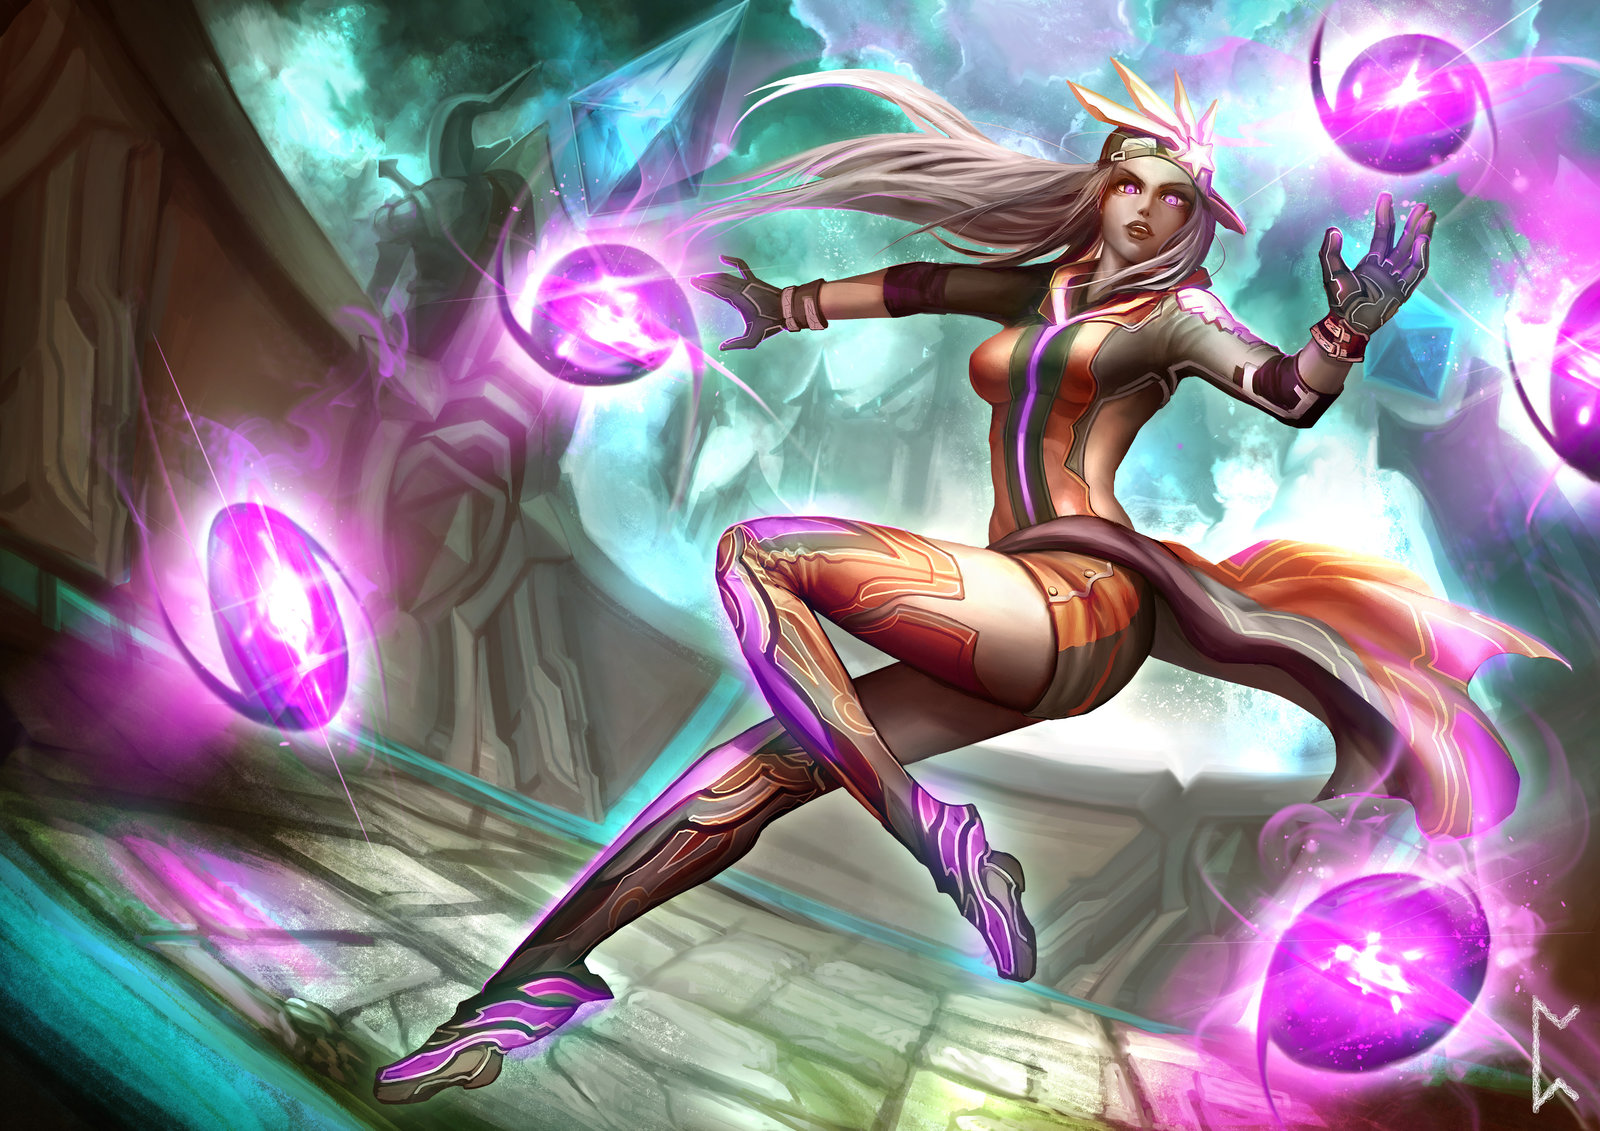 dodgeball_syndra__league_of_legends